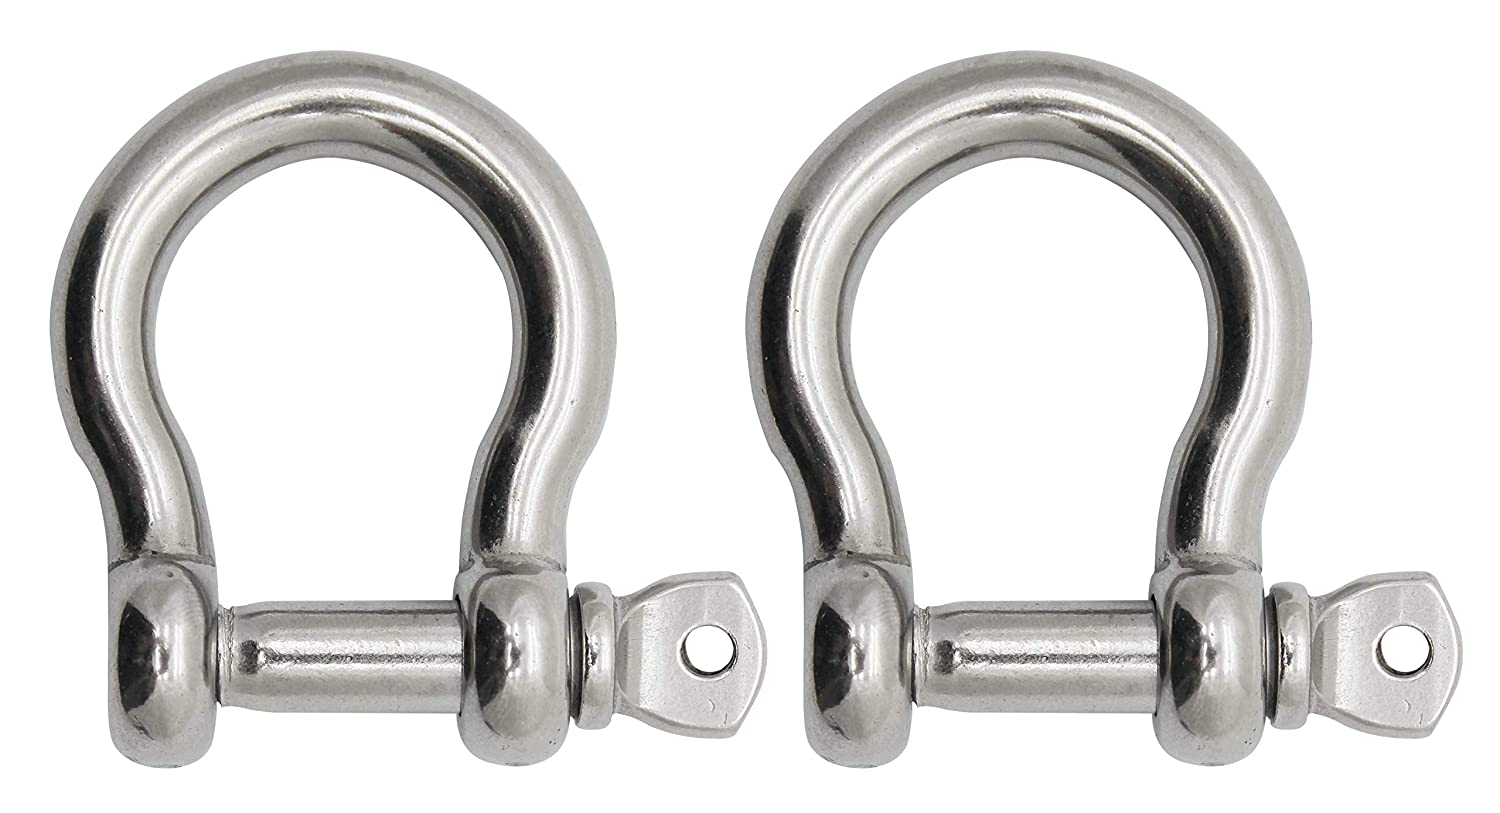 1//2 Extreme Max 3006.8297 BoatTector Stainless Steel Bow Shackle